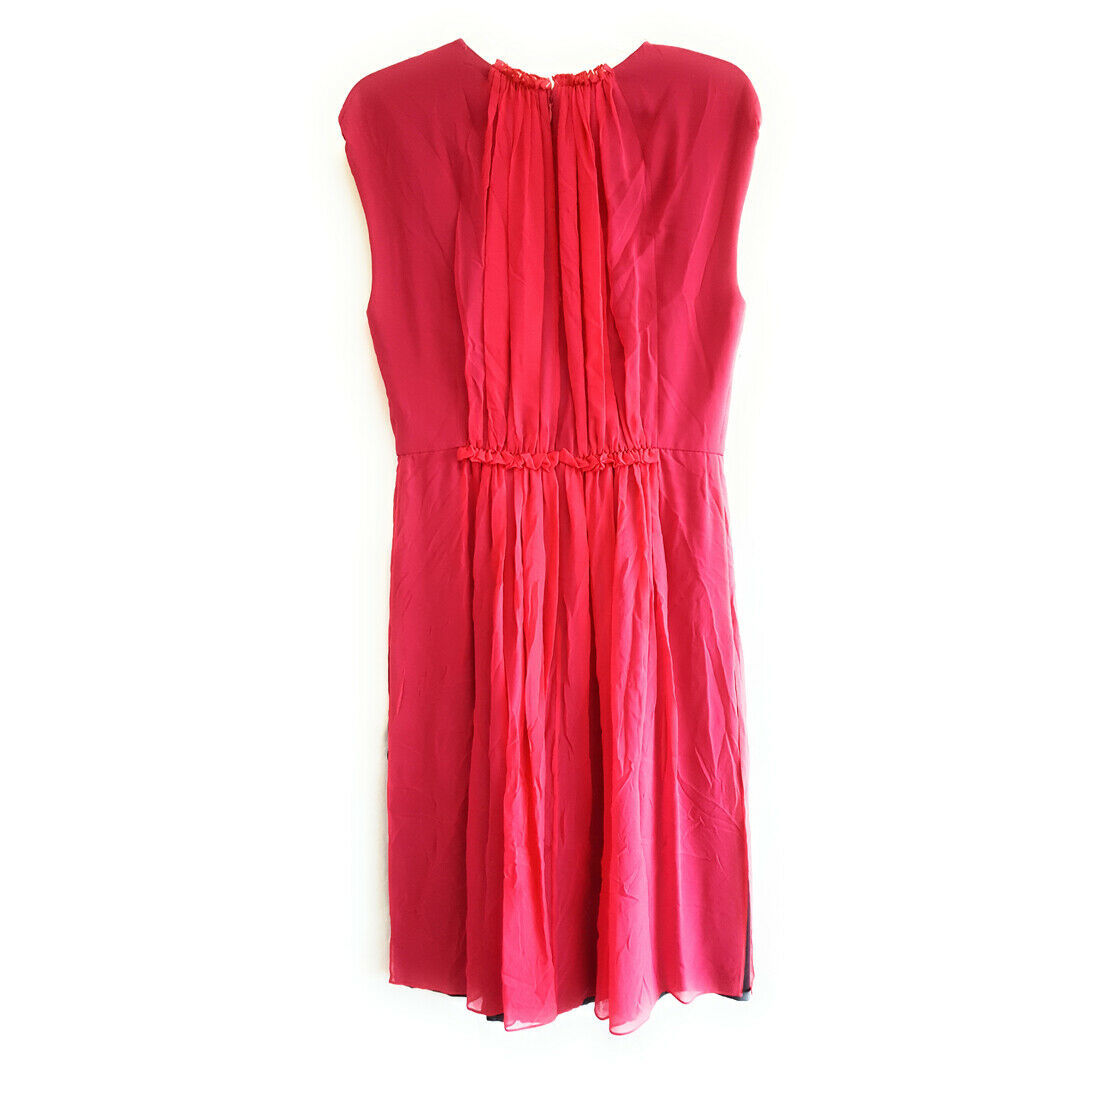 Giorgio Armani Silky Flow Dress, Hot Pink, 42 image 2